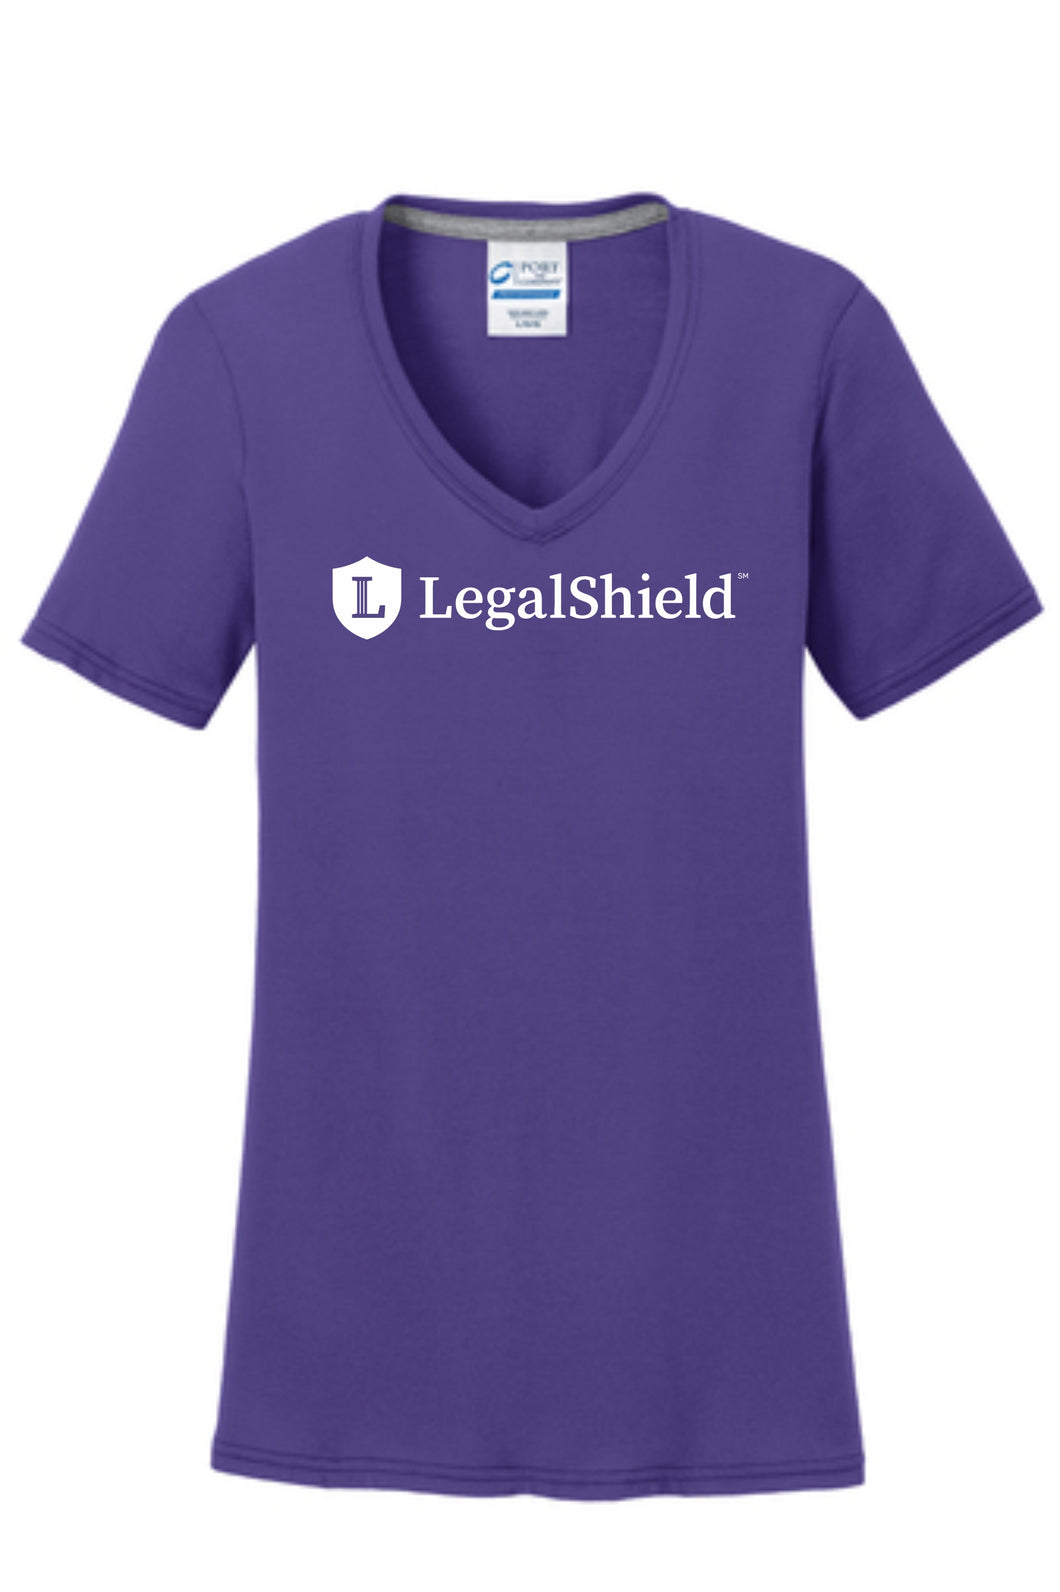 LegalShield Purple V-Neck